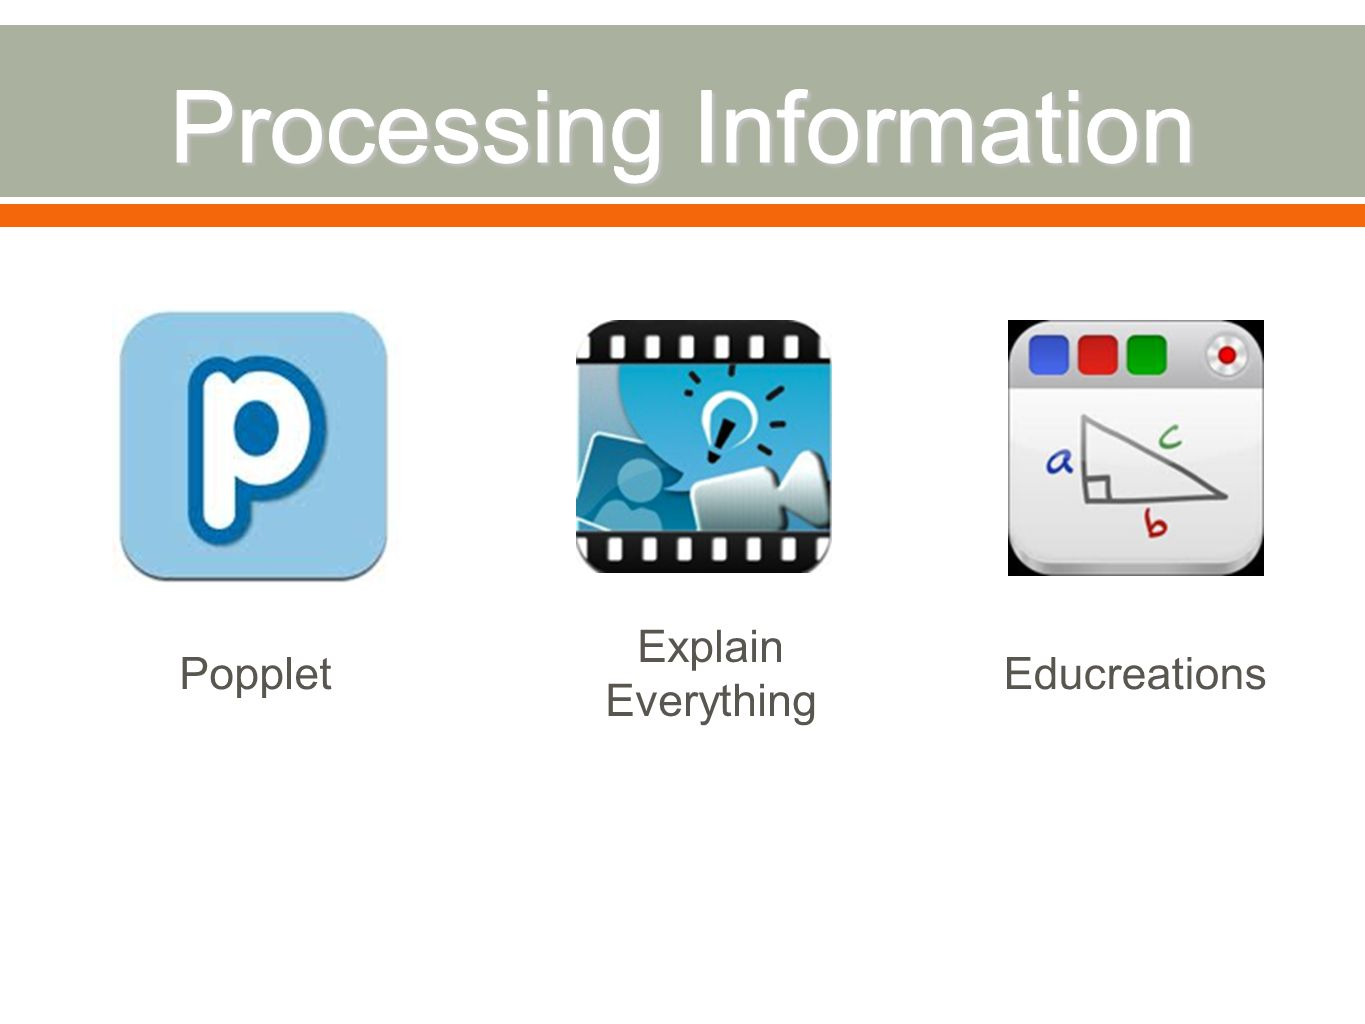 Popplet Explain Everything Educreations